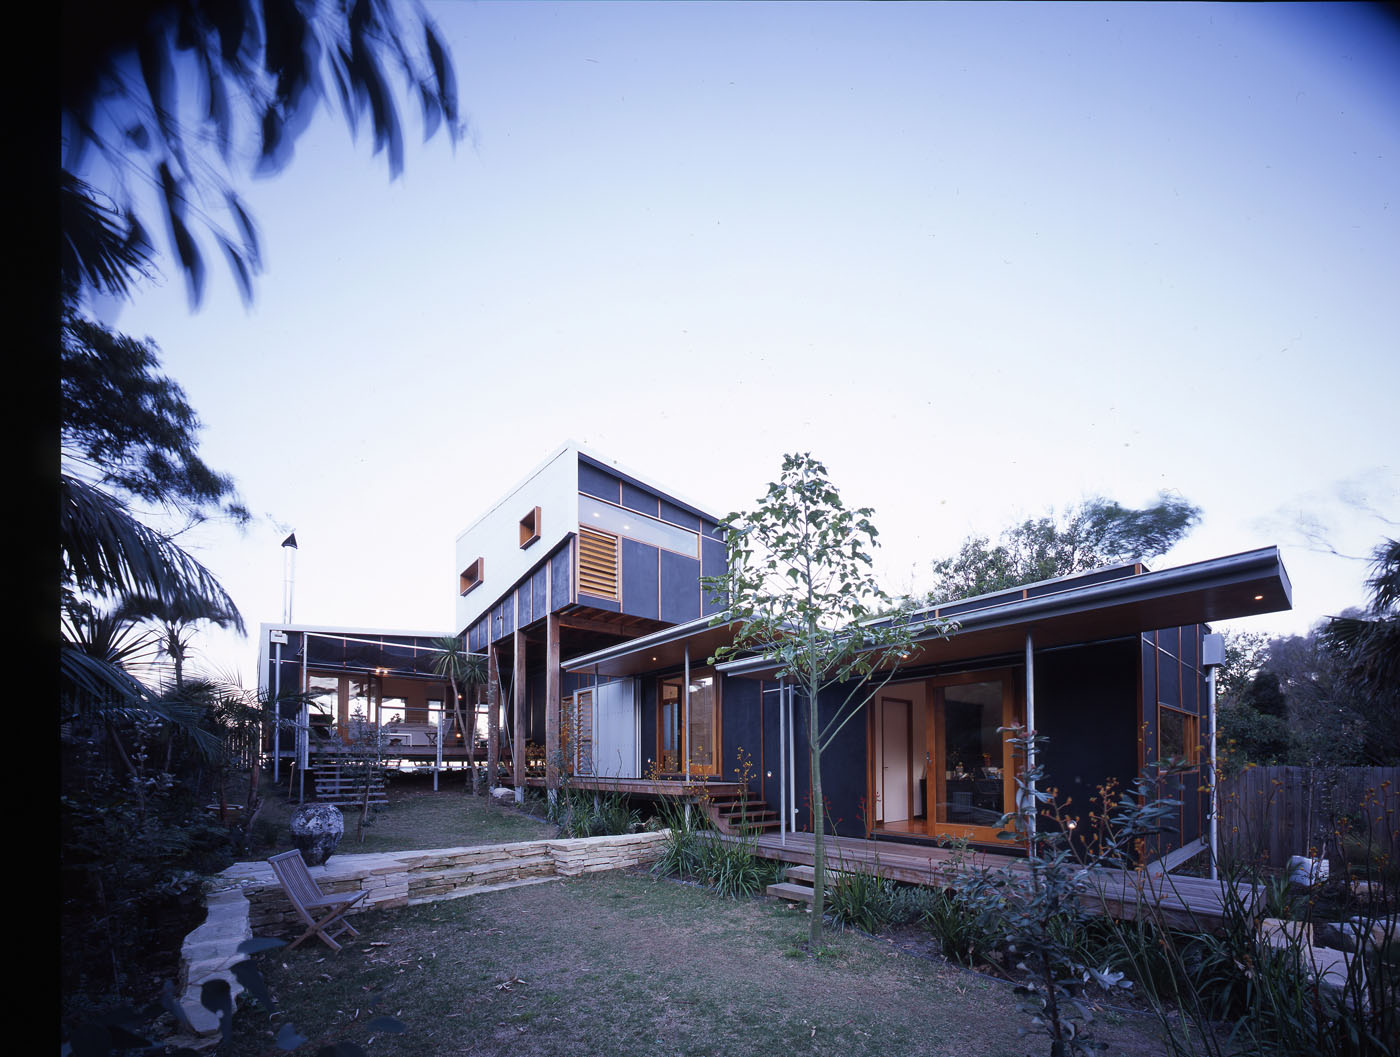 Bundeena Beach House by Sydney award winning residential architecture firm Sam Crawford Architects. View from garden to raised open deck.